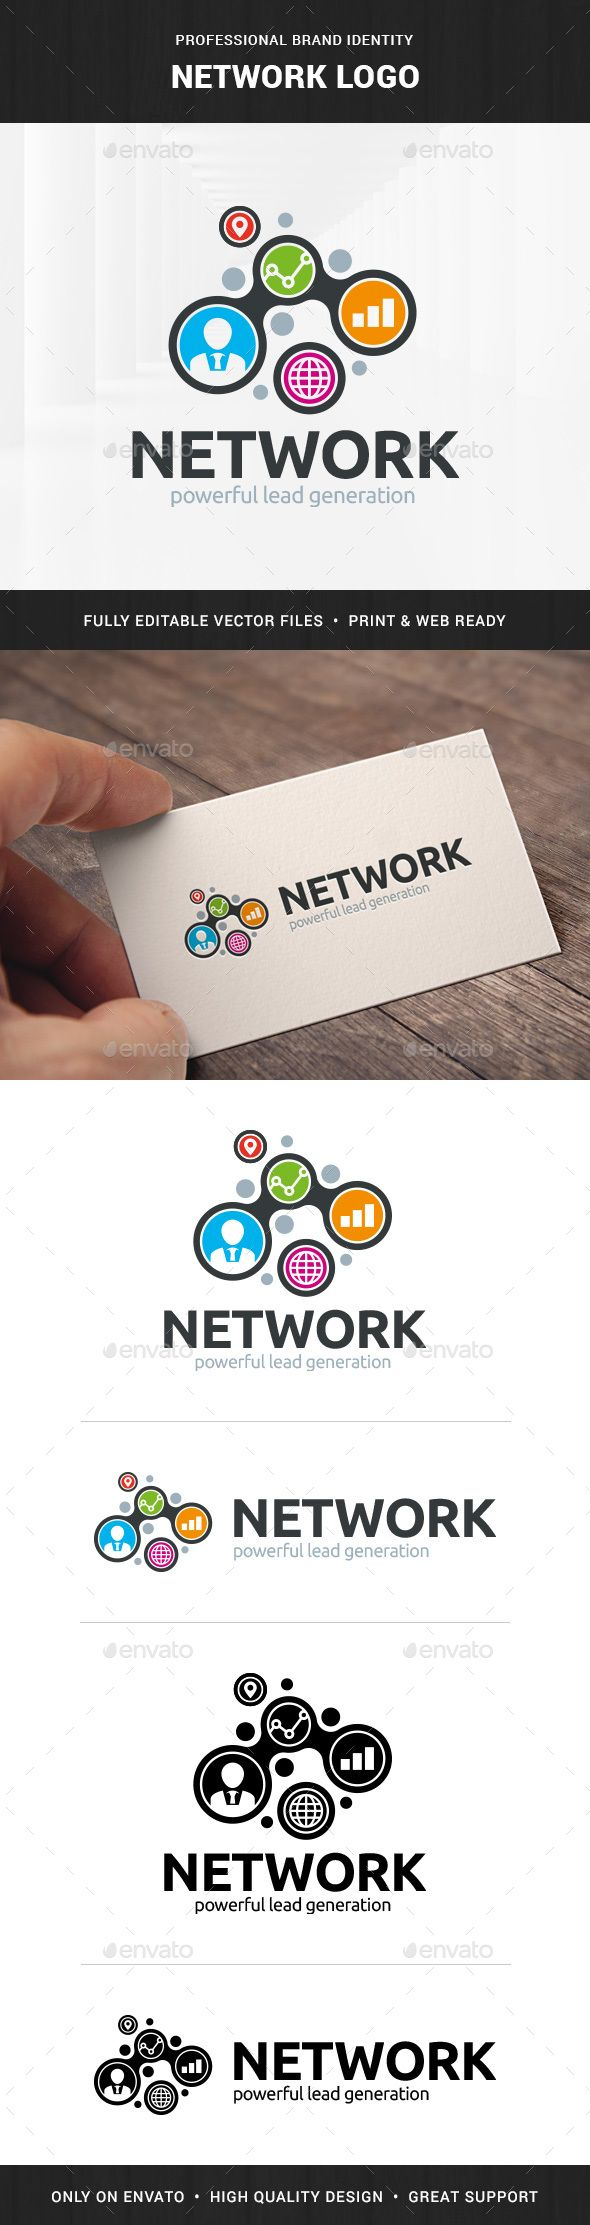 Network Logo Template by LiveAtTheBBQ The Network Logo TemplateA professional logo design for many kinds of network and stats related business. All elements are fully